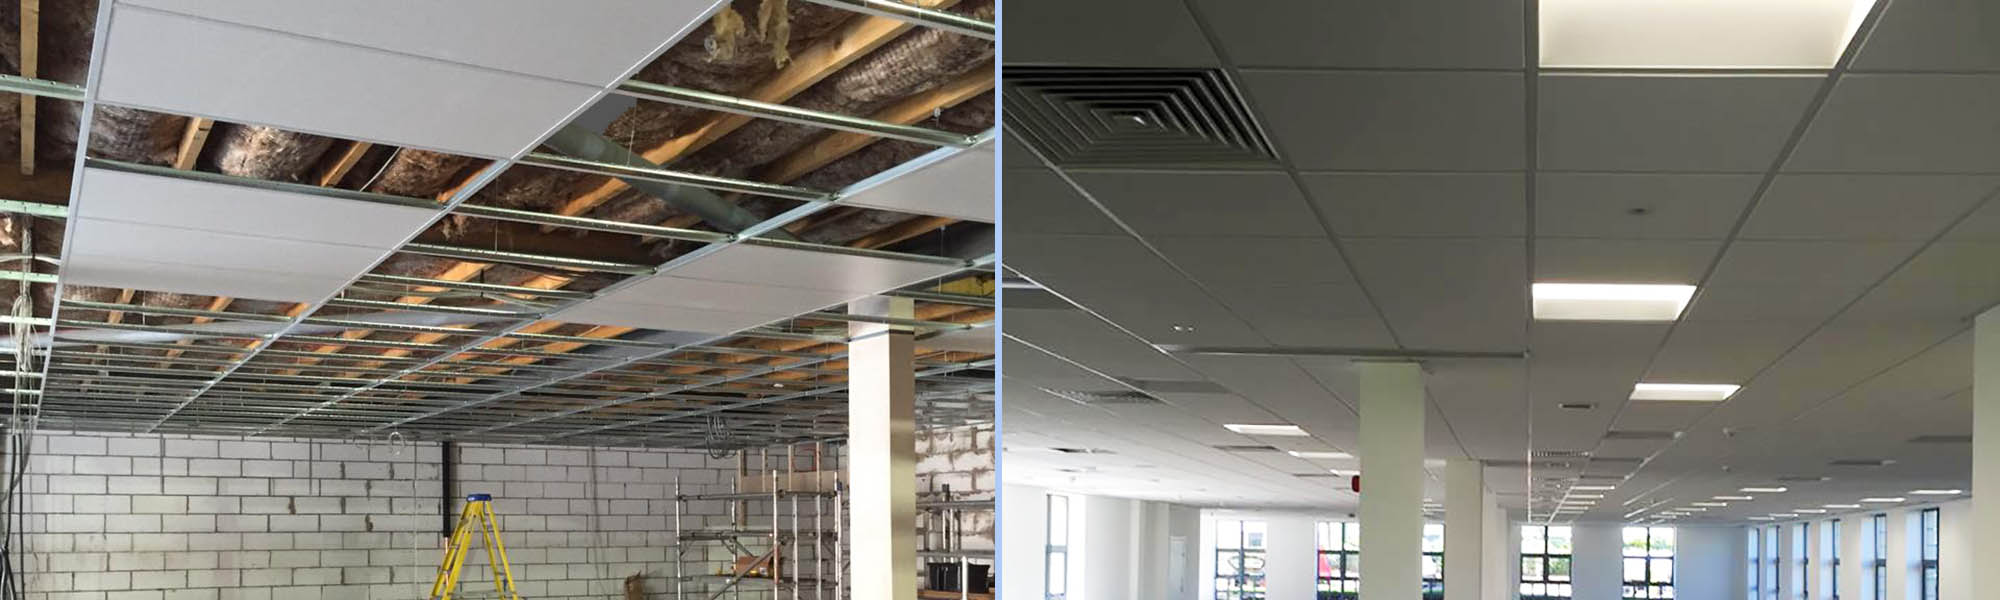 Suspended Ceiling Materials